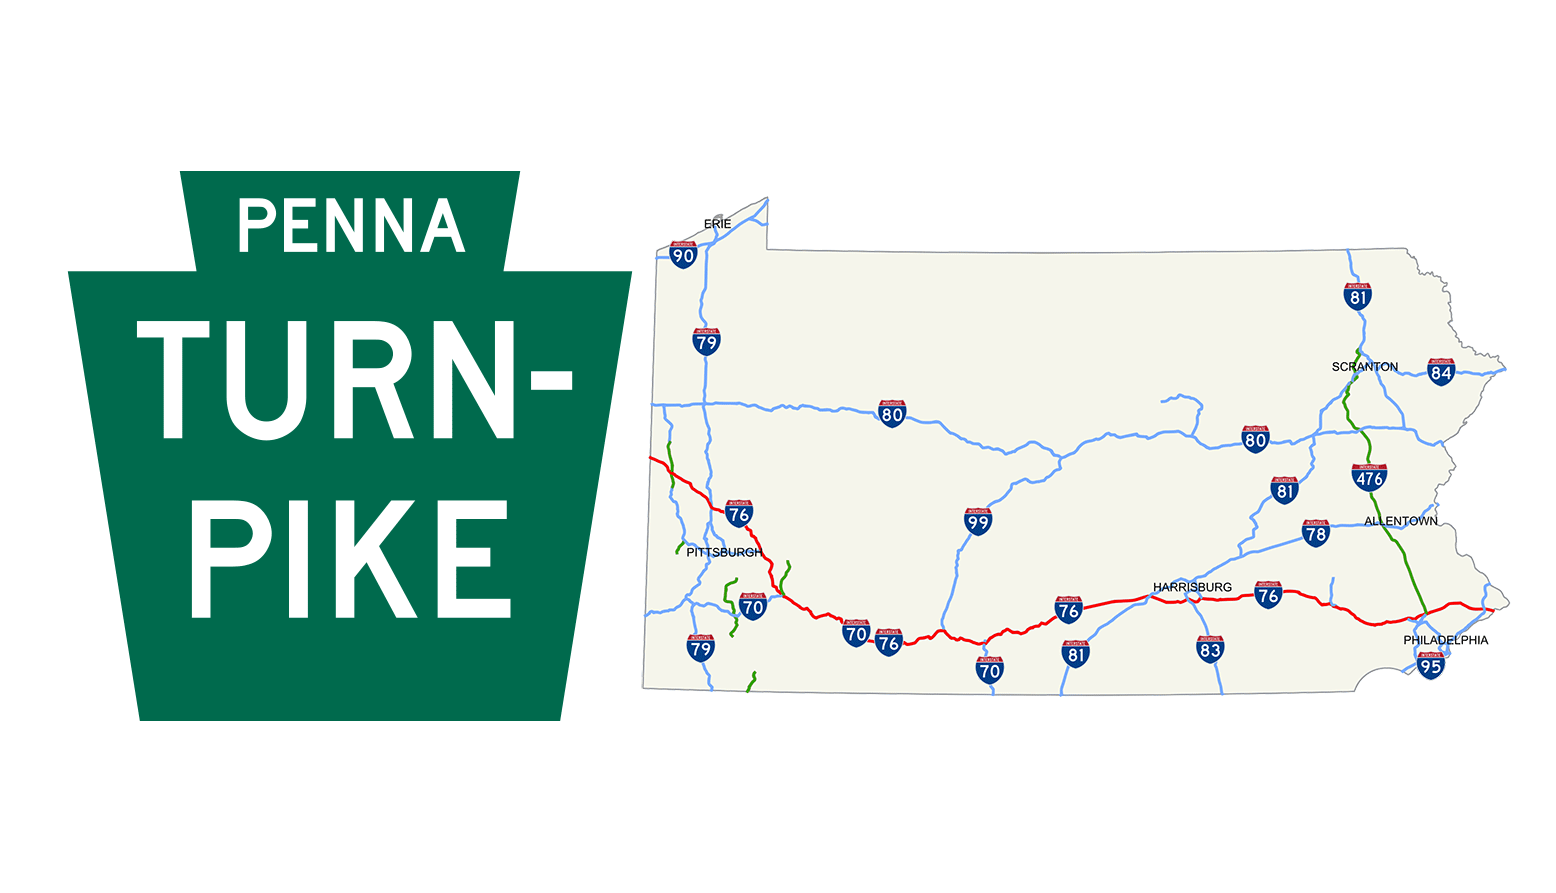 86 Mile Stretch of Pennsylvania Turnpike Closed